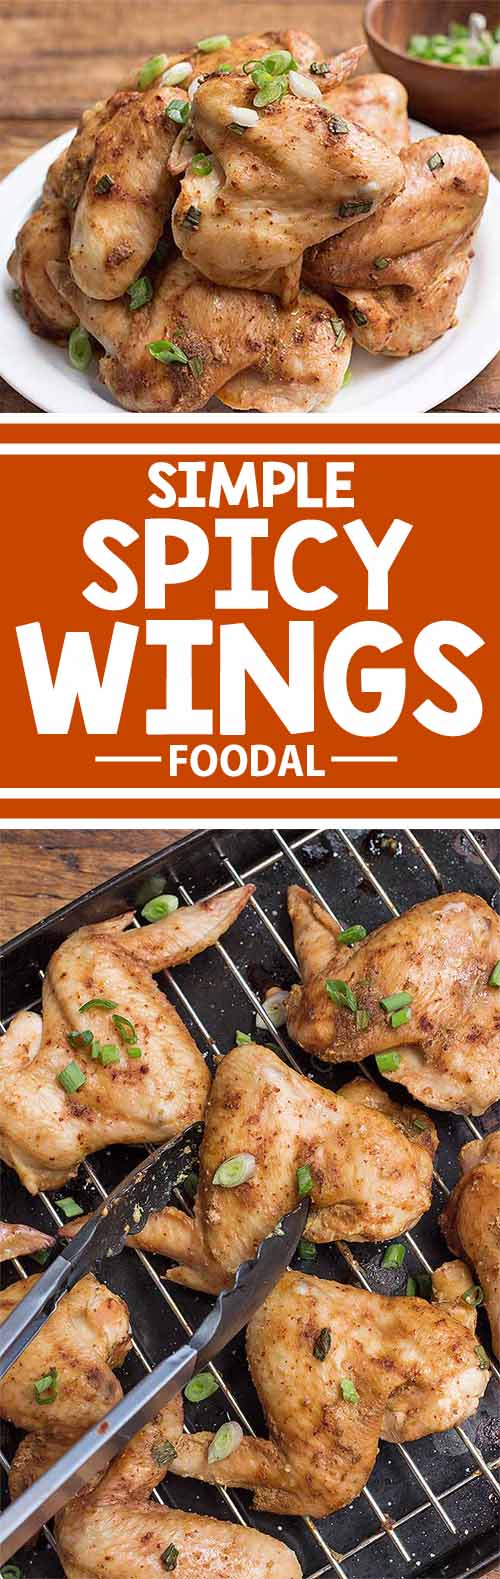 Looking to master your wing technique? Well, you've come to the right place! There's no better way to start than with our recipe for a simple and spicy marinade. The steps might be easy, but the end result is truly a flavor sensation. Read on and give this recipe a try. You won't be disappointed!